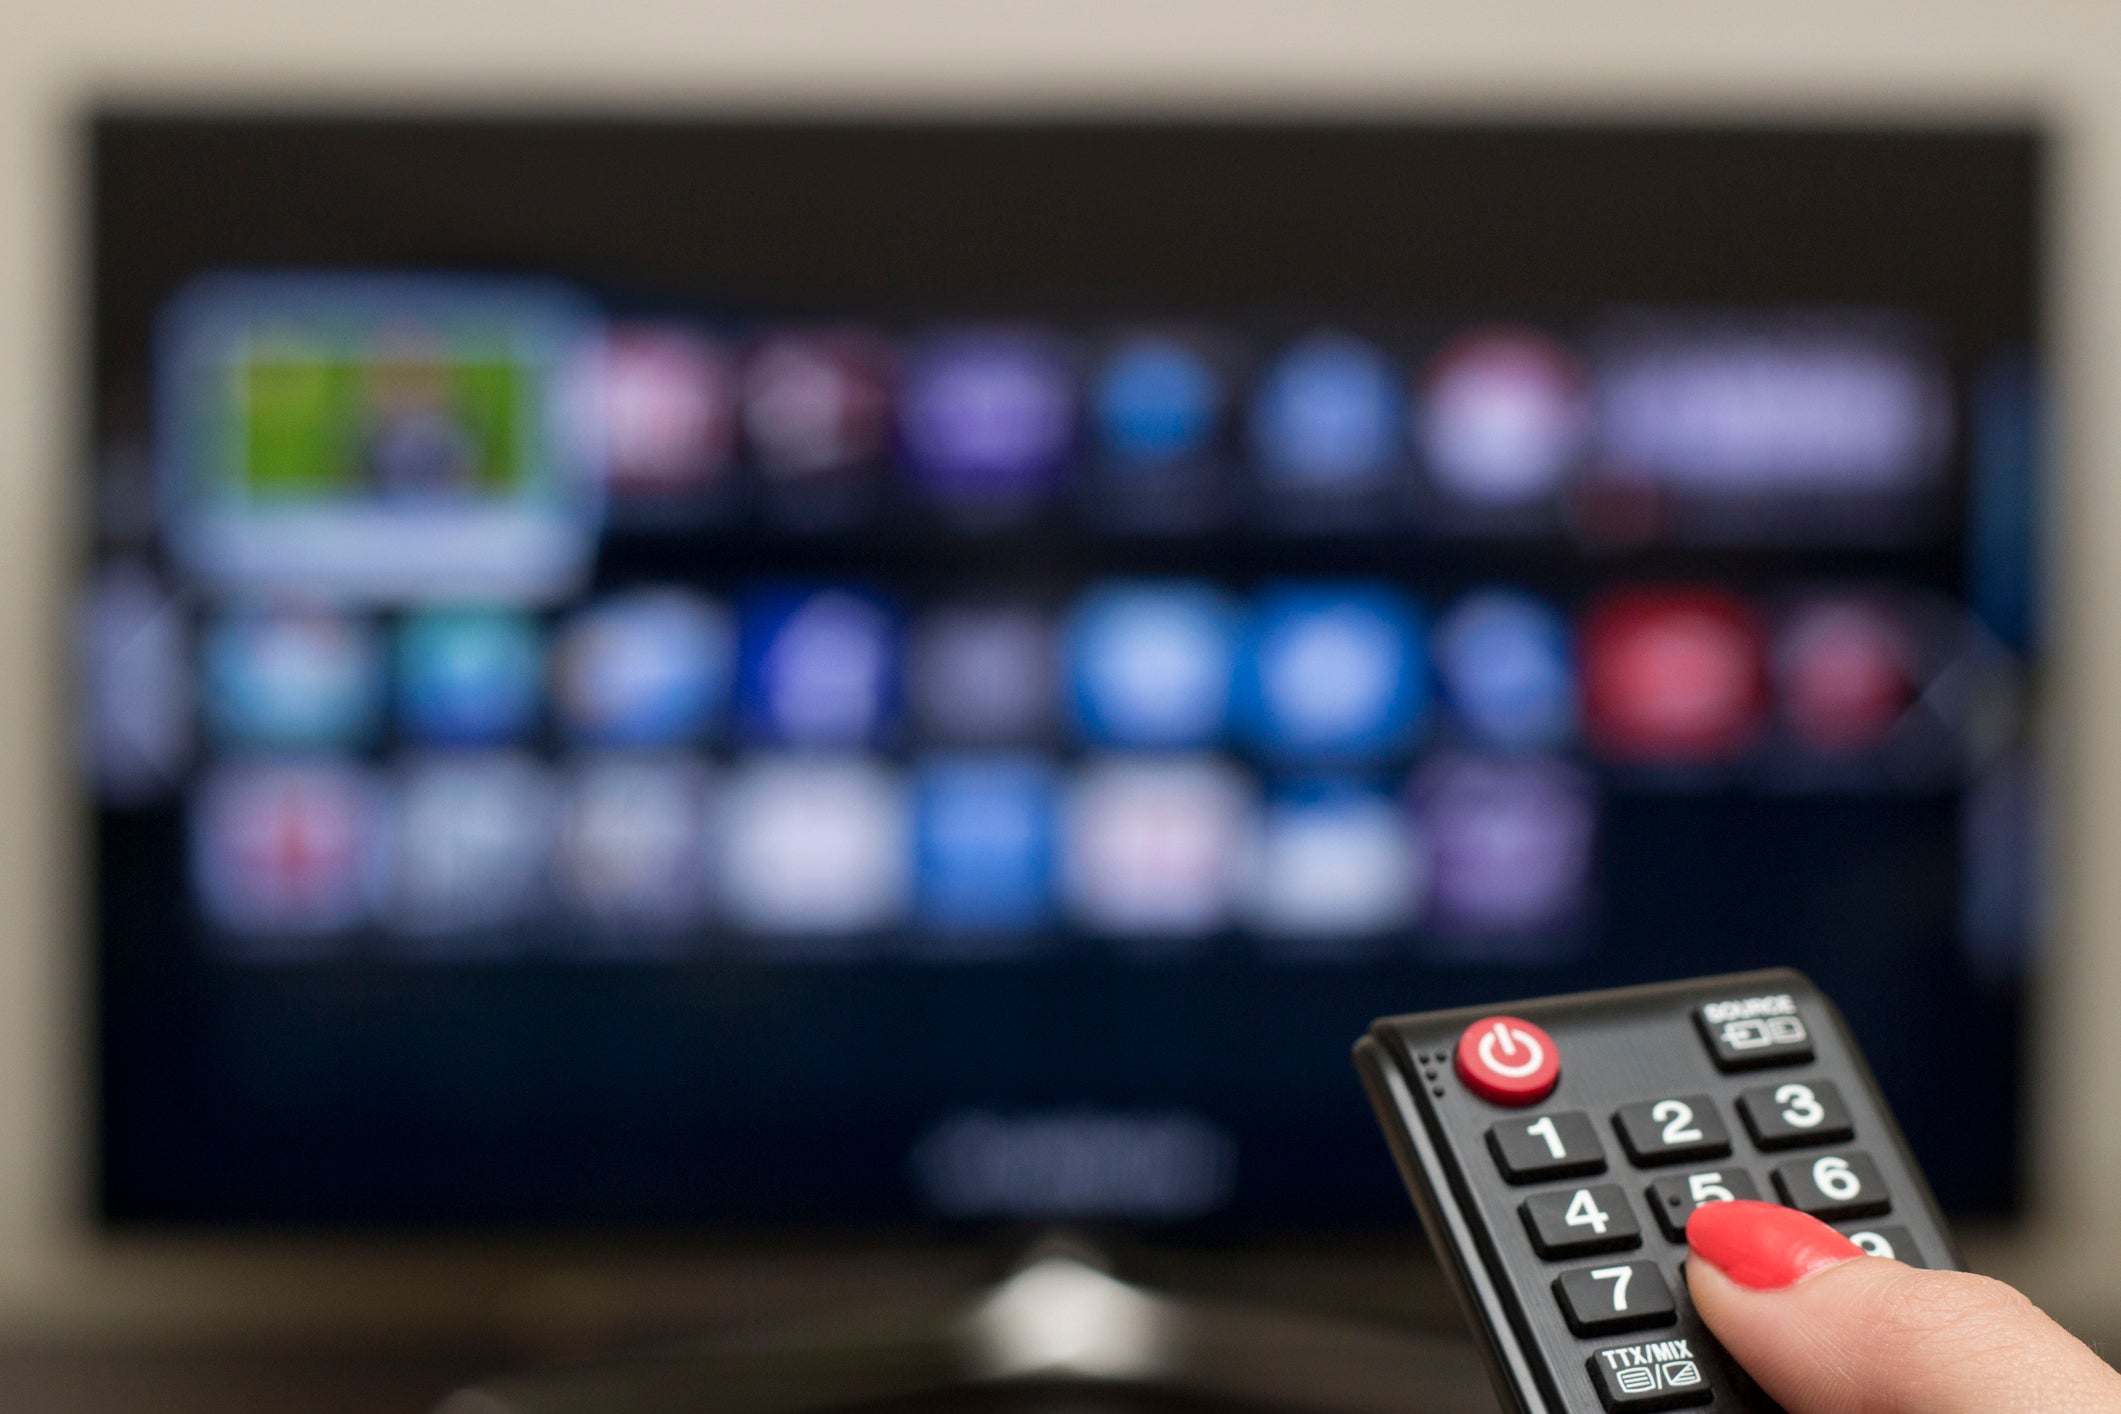 YouTube TV to Add HBO and Cinemax to Menu, HBO Max Later | The Motley Fool